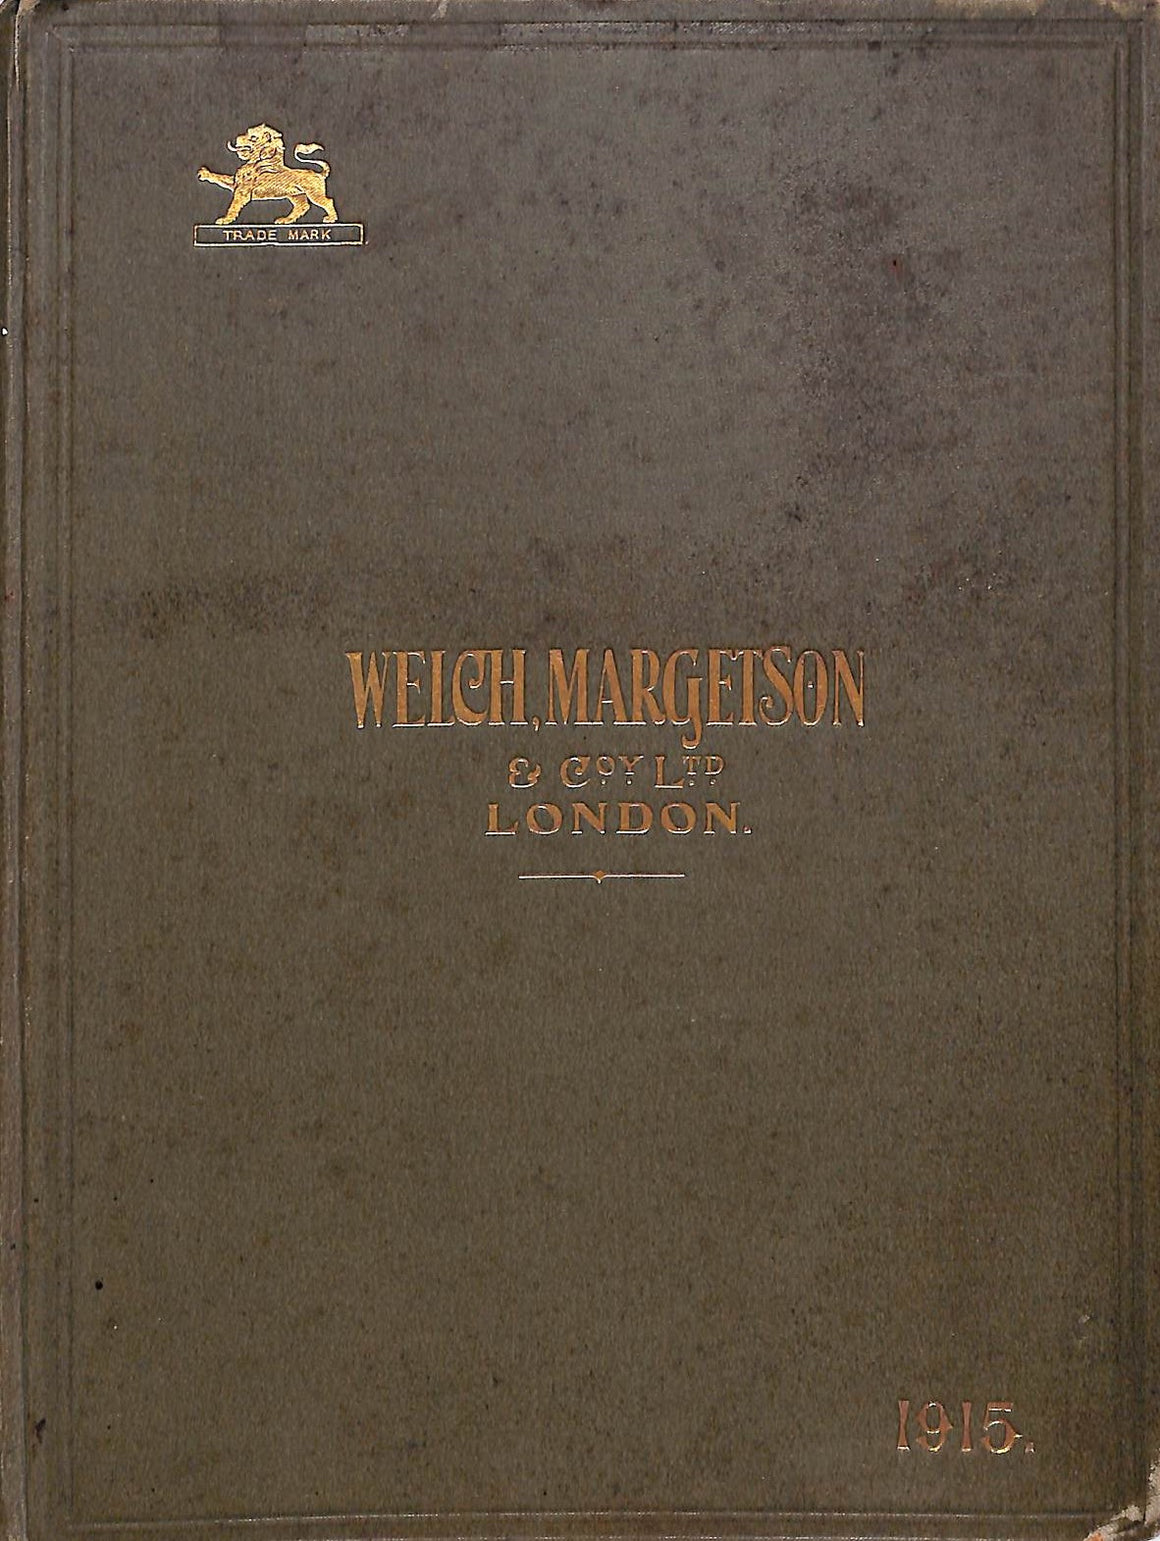 Welch, Margetson & Co Ltd London 1915